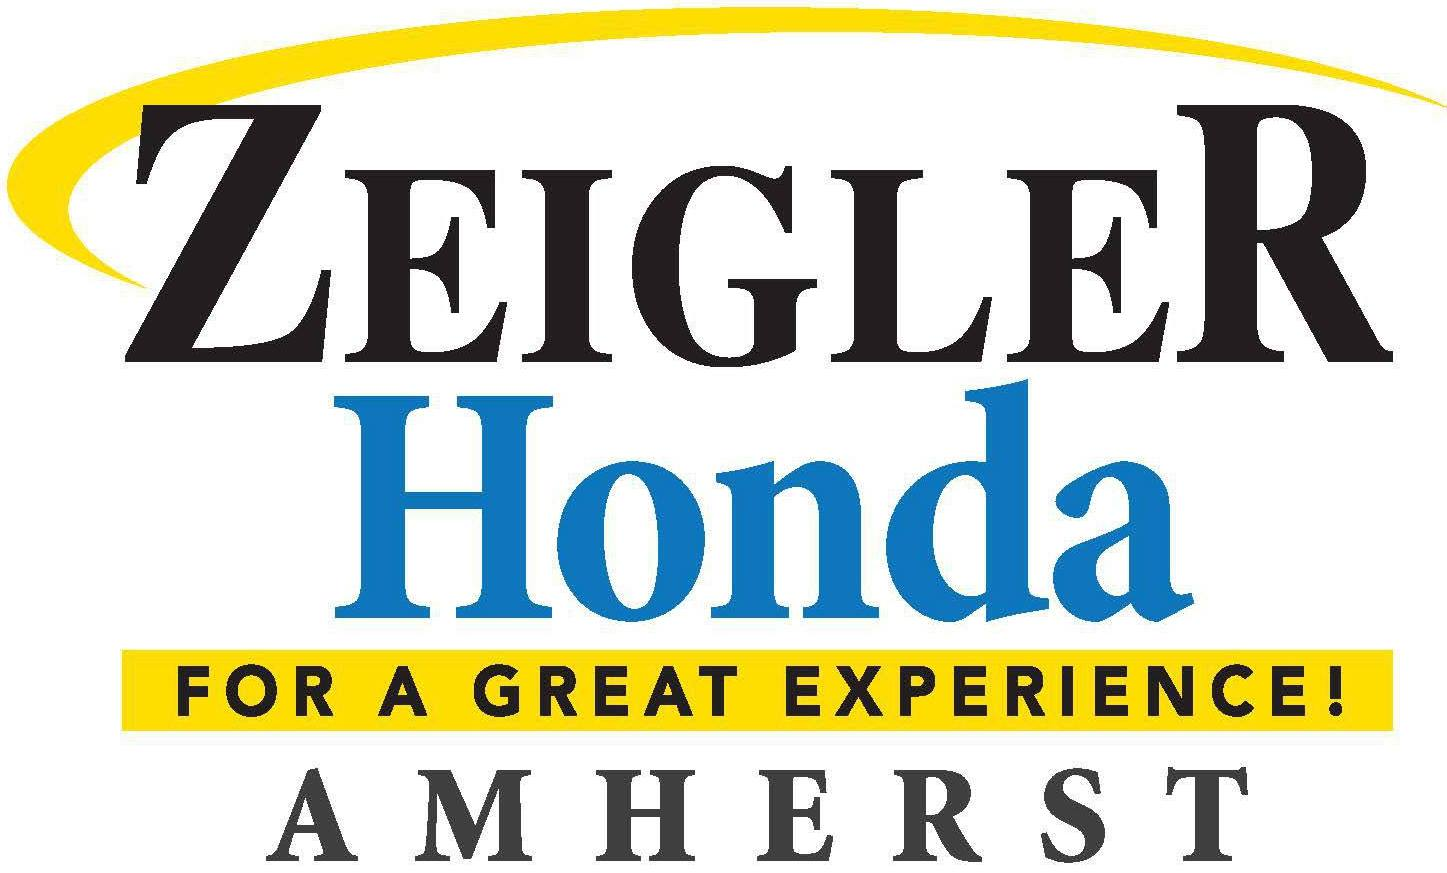 Zeigler Honda to Hold Grand Opening Event on April 14 | Mar 31, 2014